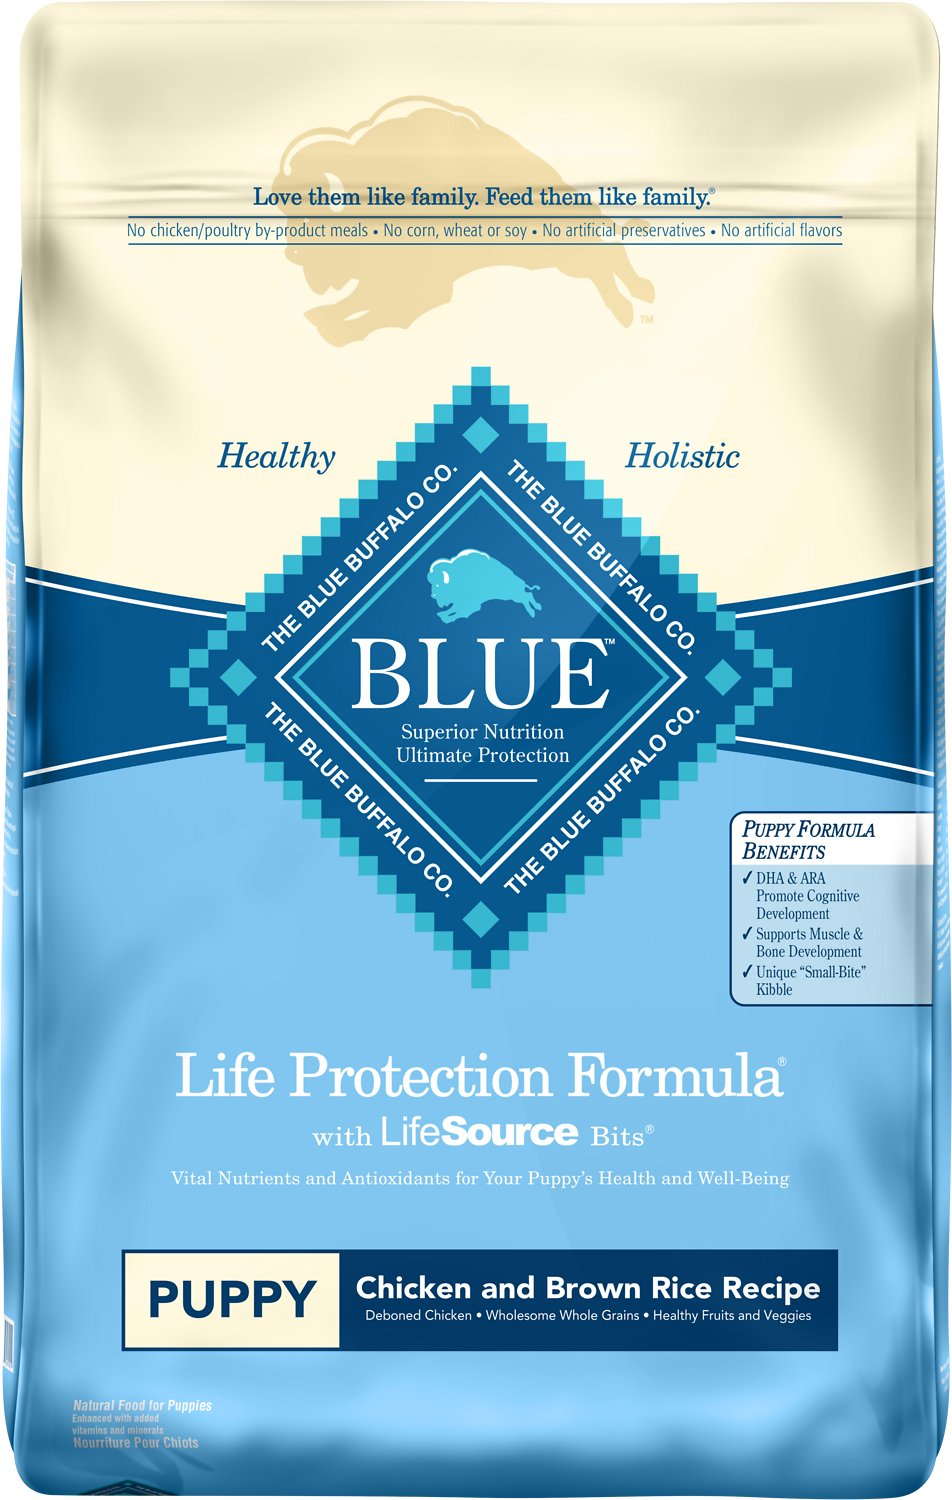 Blue Buffalo Life Protection Formula Puppy Chicken & Brown Rice Recipe Dry Dog Food Image